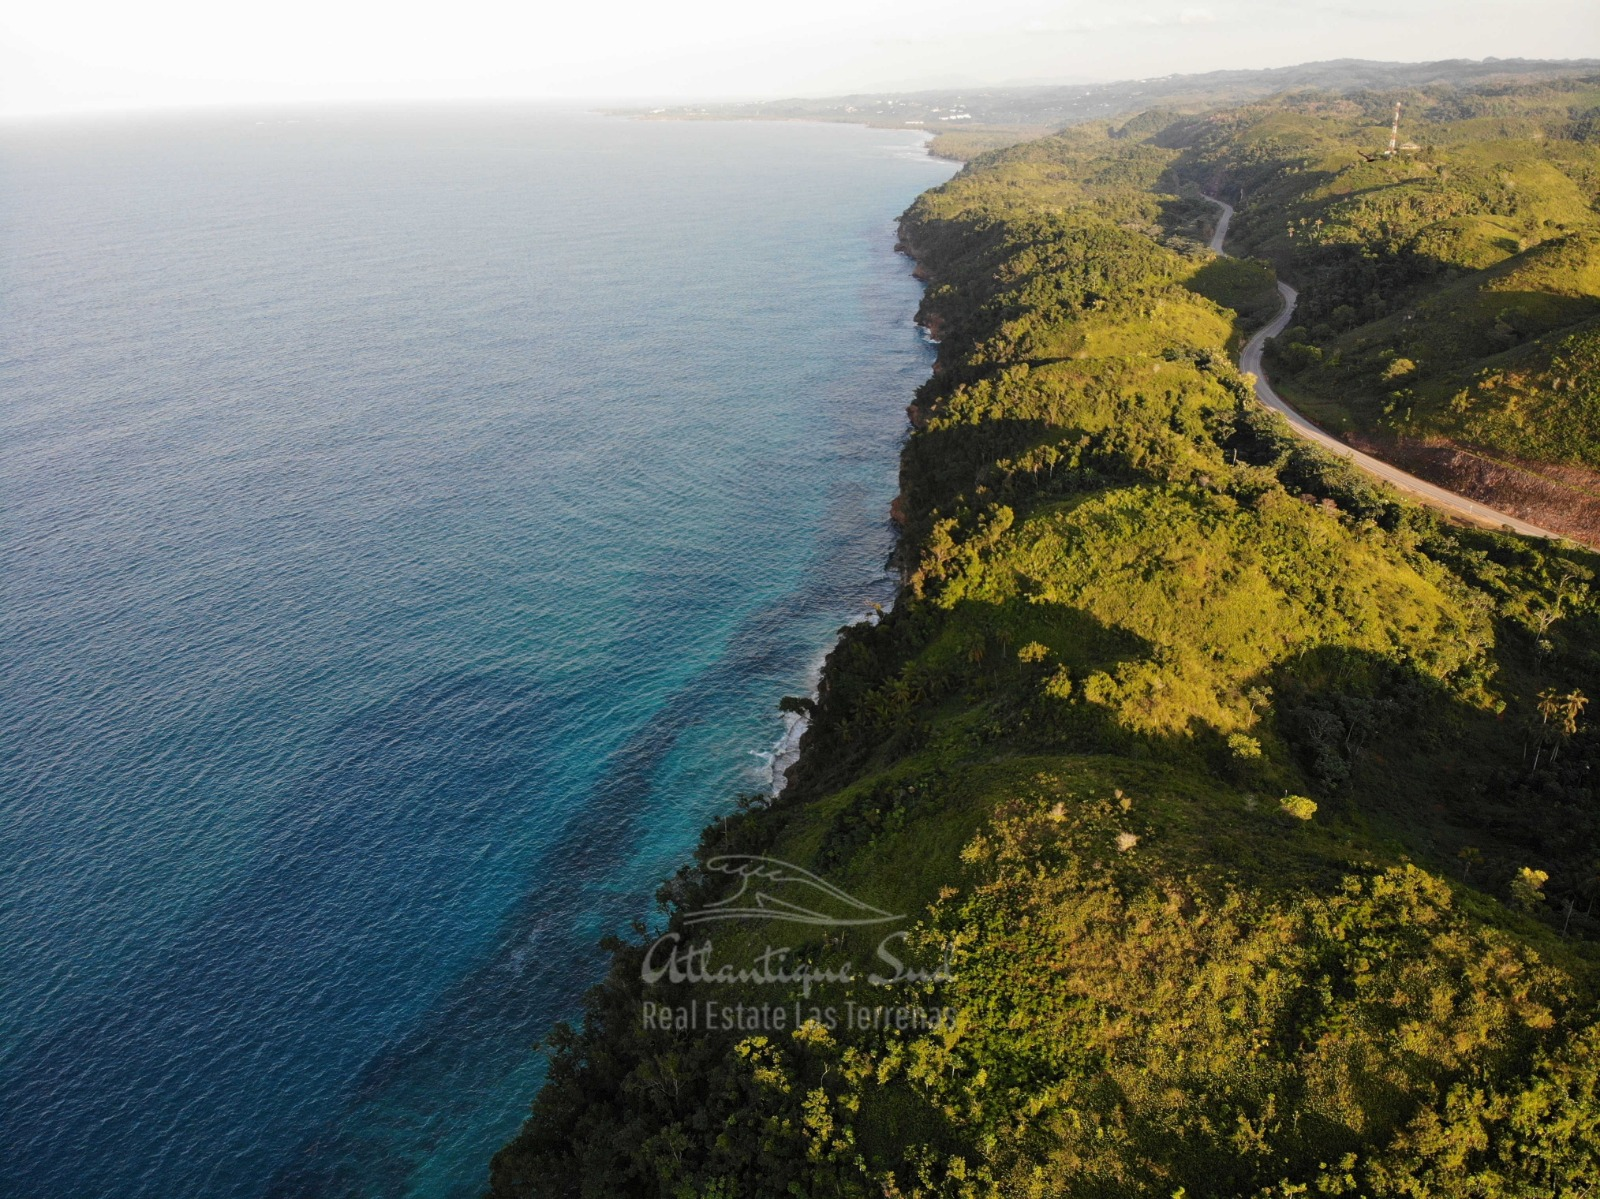 Cliff Land for Sale Las Terrenas 24.jpeg